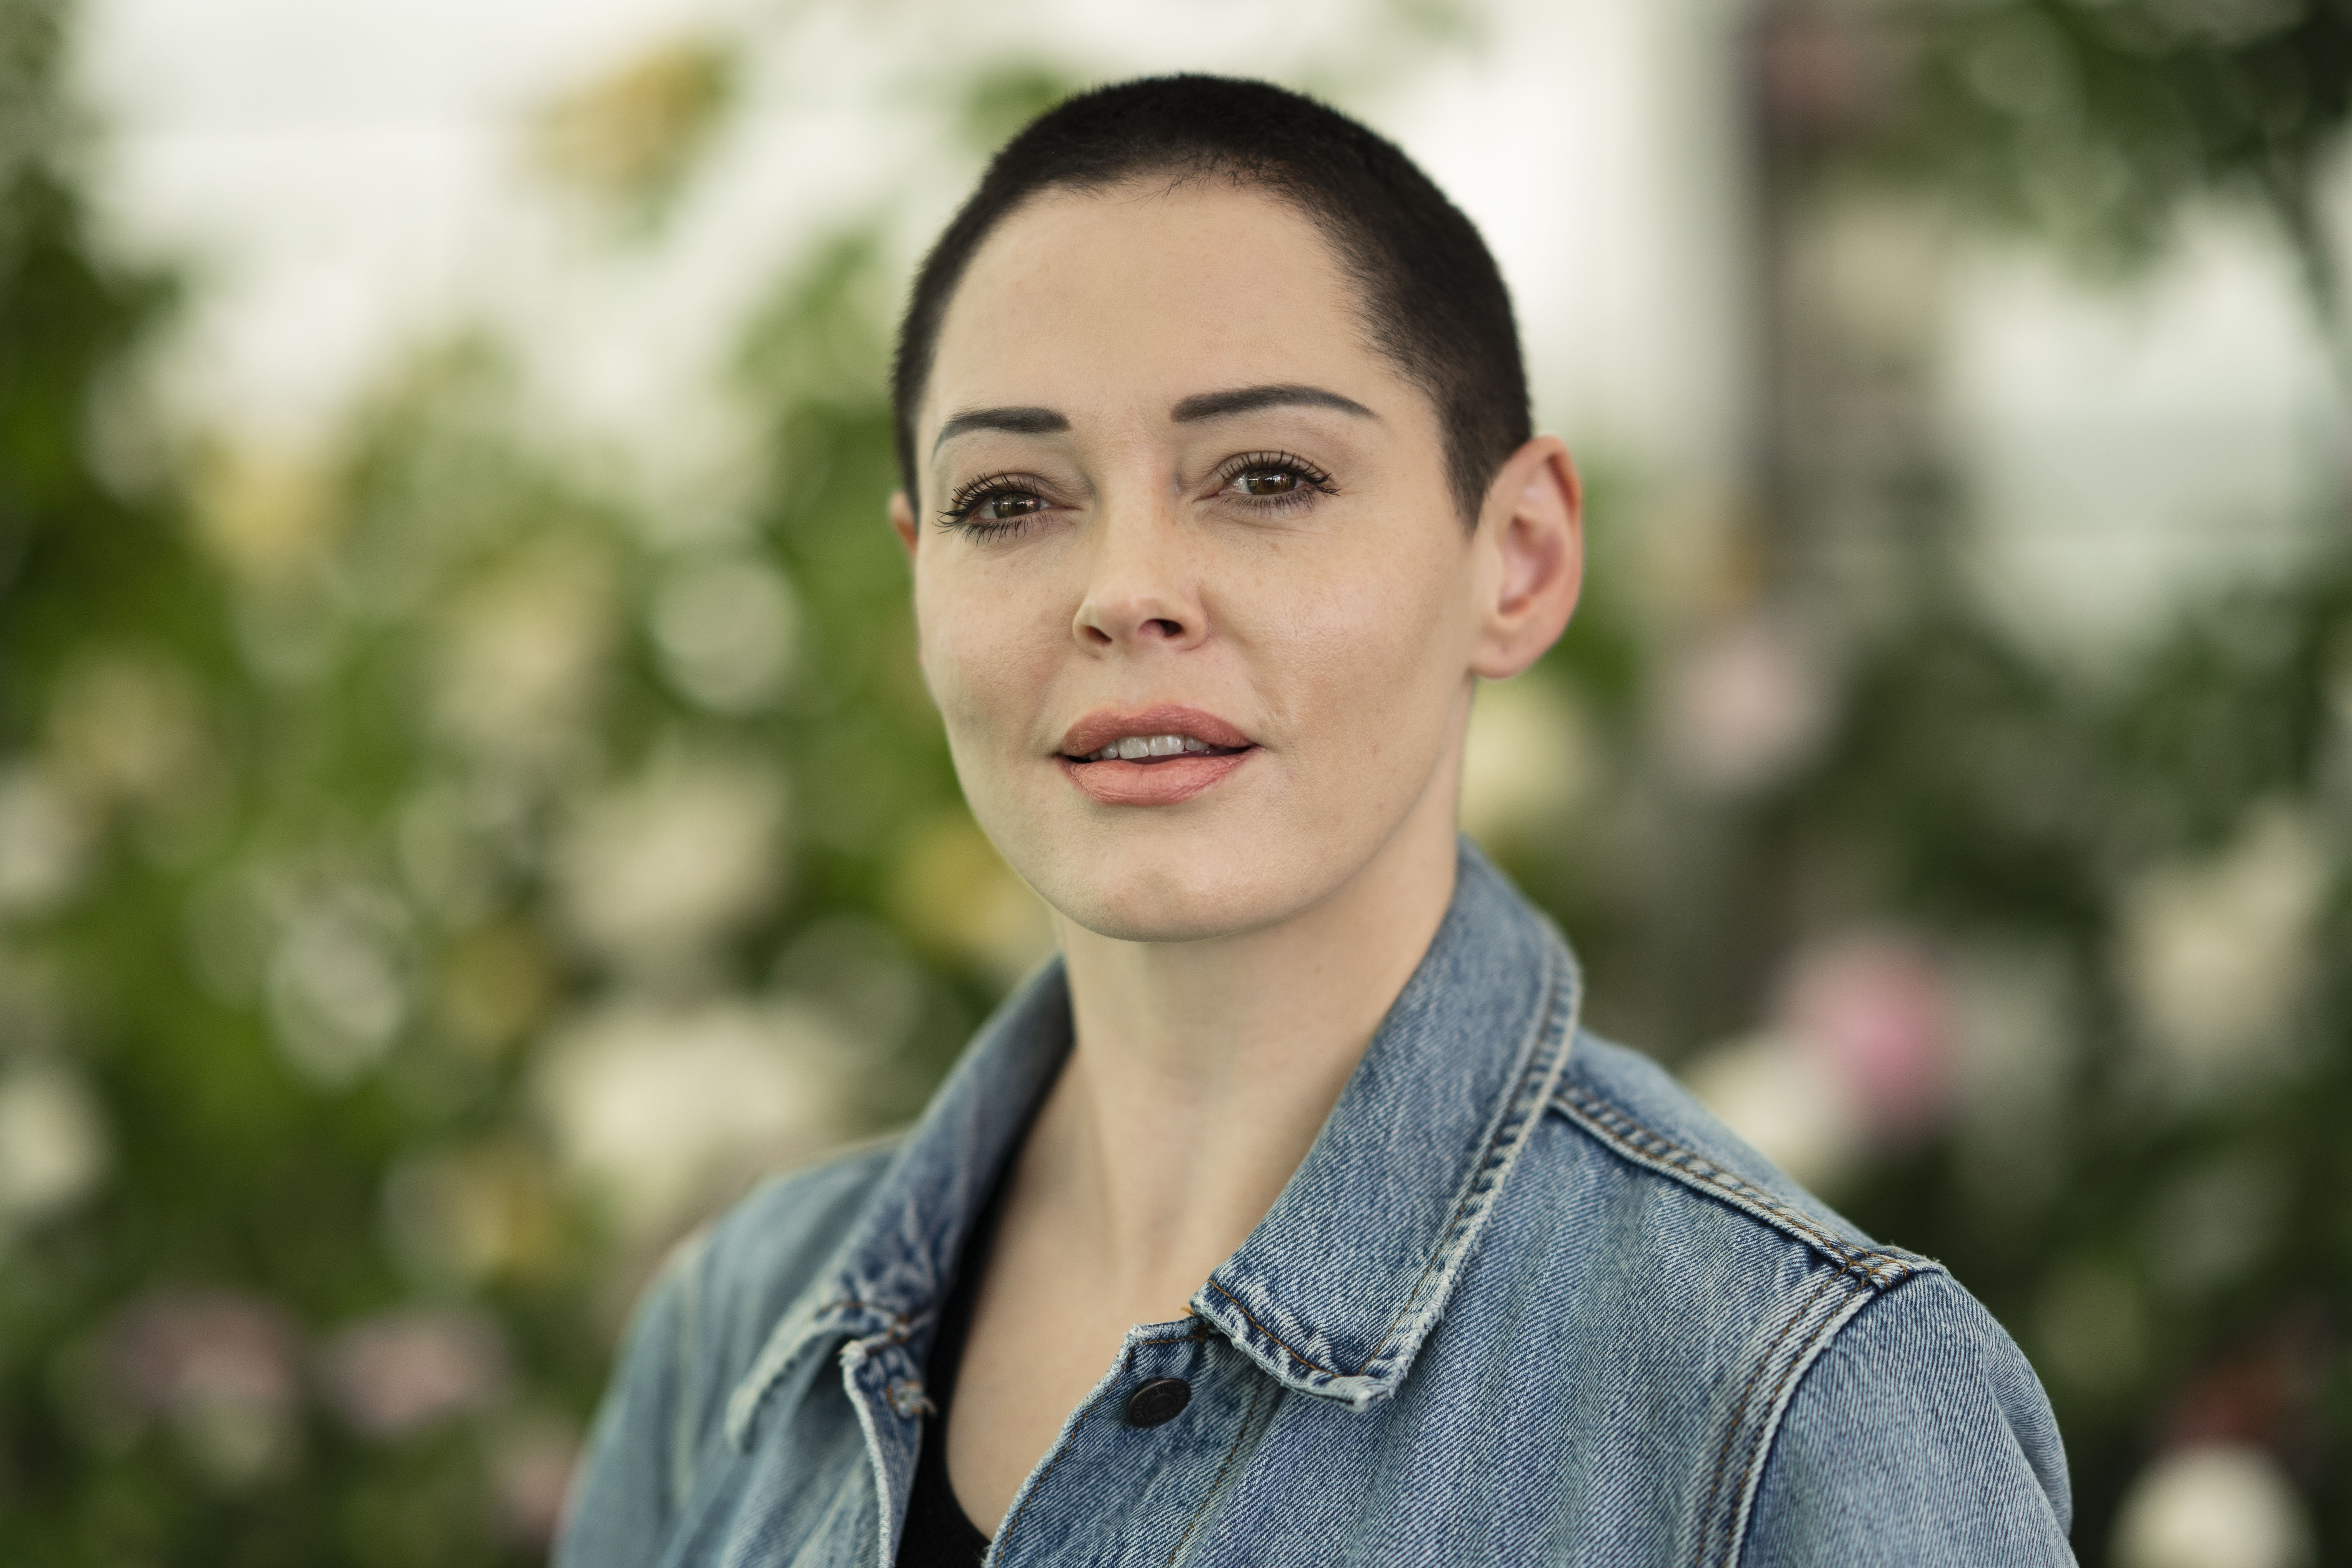 Image Credit: Getty Images / Rose McGowan, film-maker and author of 'Brave', at the Hay Festival on June 2, 2018 in Hay-on-Wye, Wales.